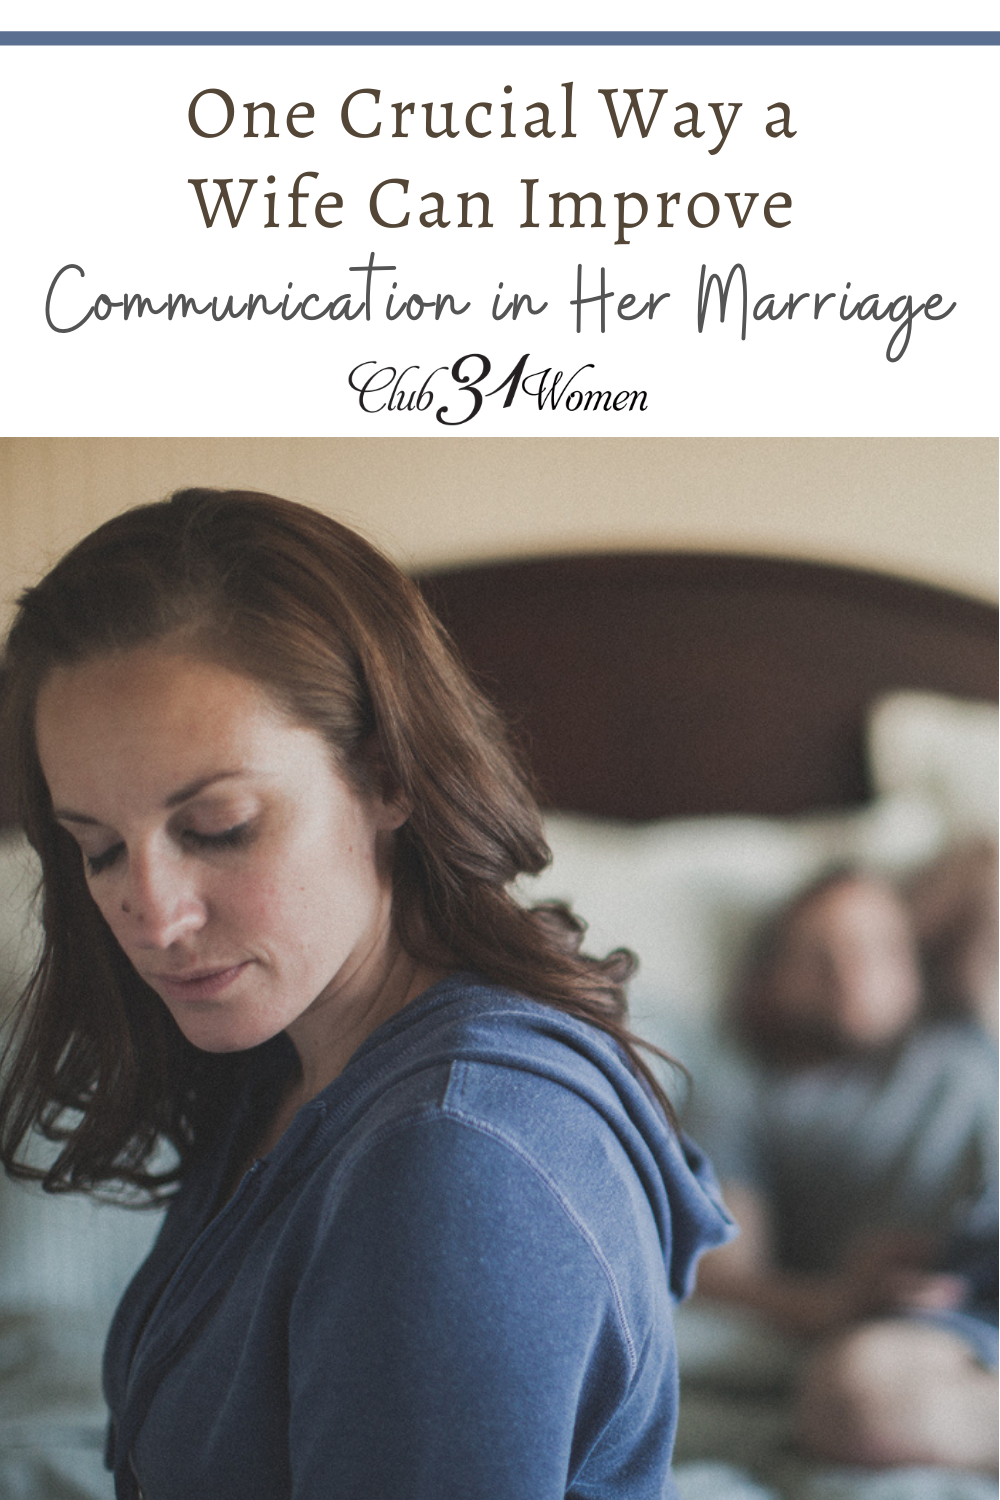 Communication can be vastly improved in a marriage with this one crucial improvement. Are you willing to give it a try? via @Club31Women